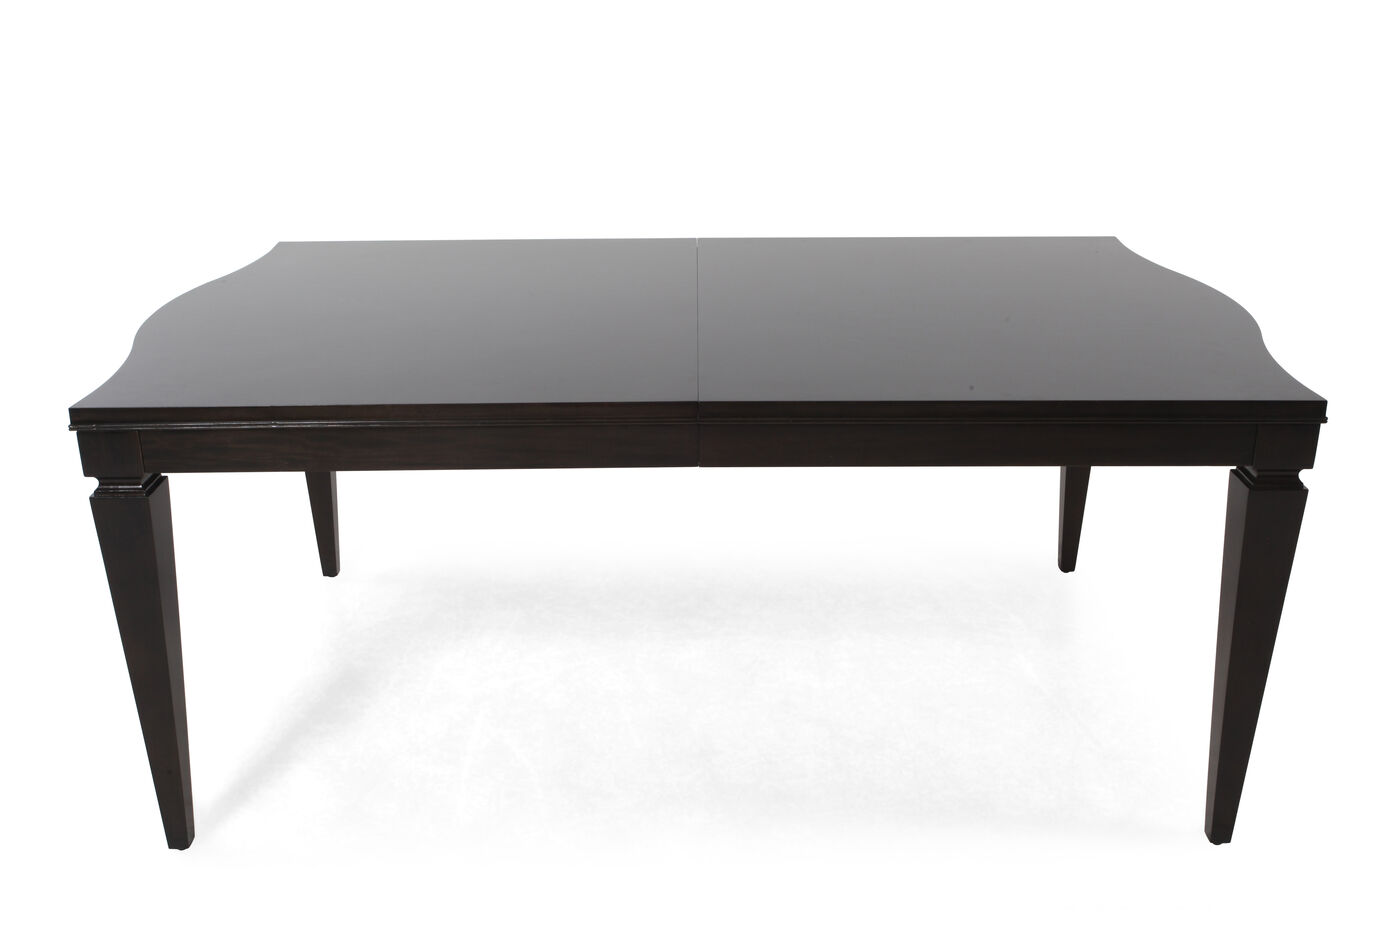 Bernhardt Sutton House Dining Table; Bernhardt Sutton House Dining Table ... - Bernhardt Sutton House Dining Table Mathis Brothers Furniture